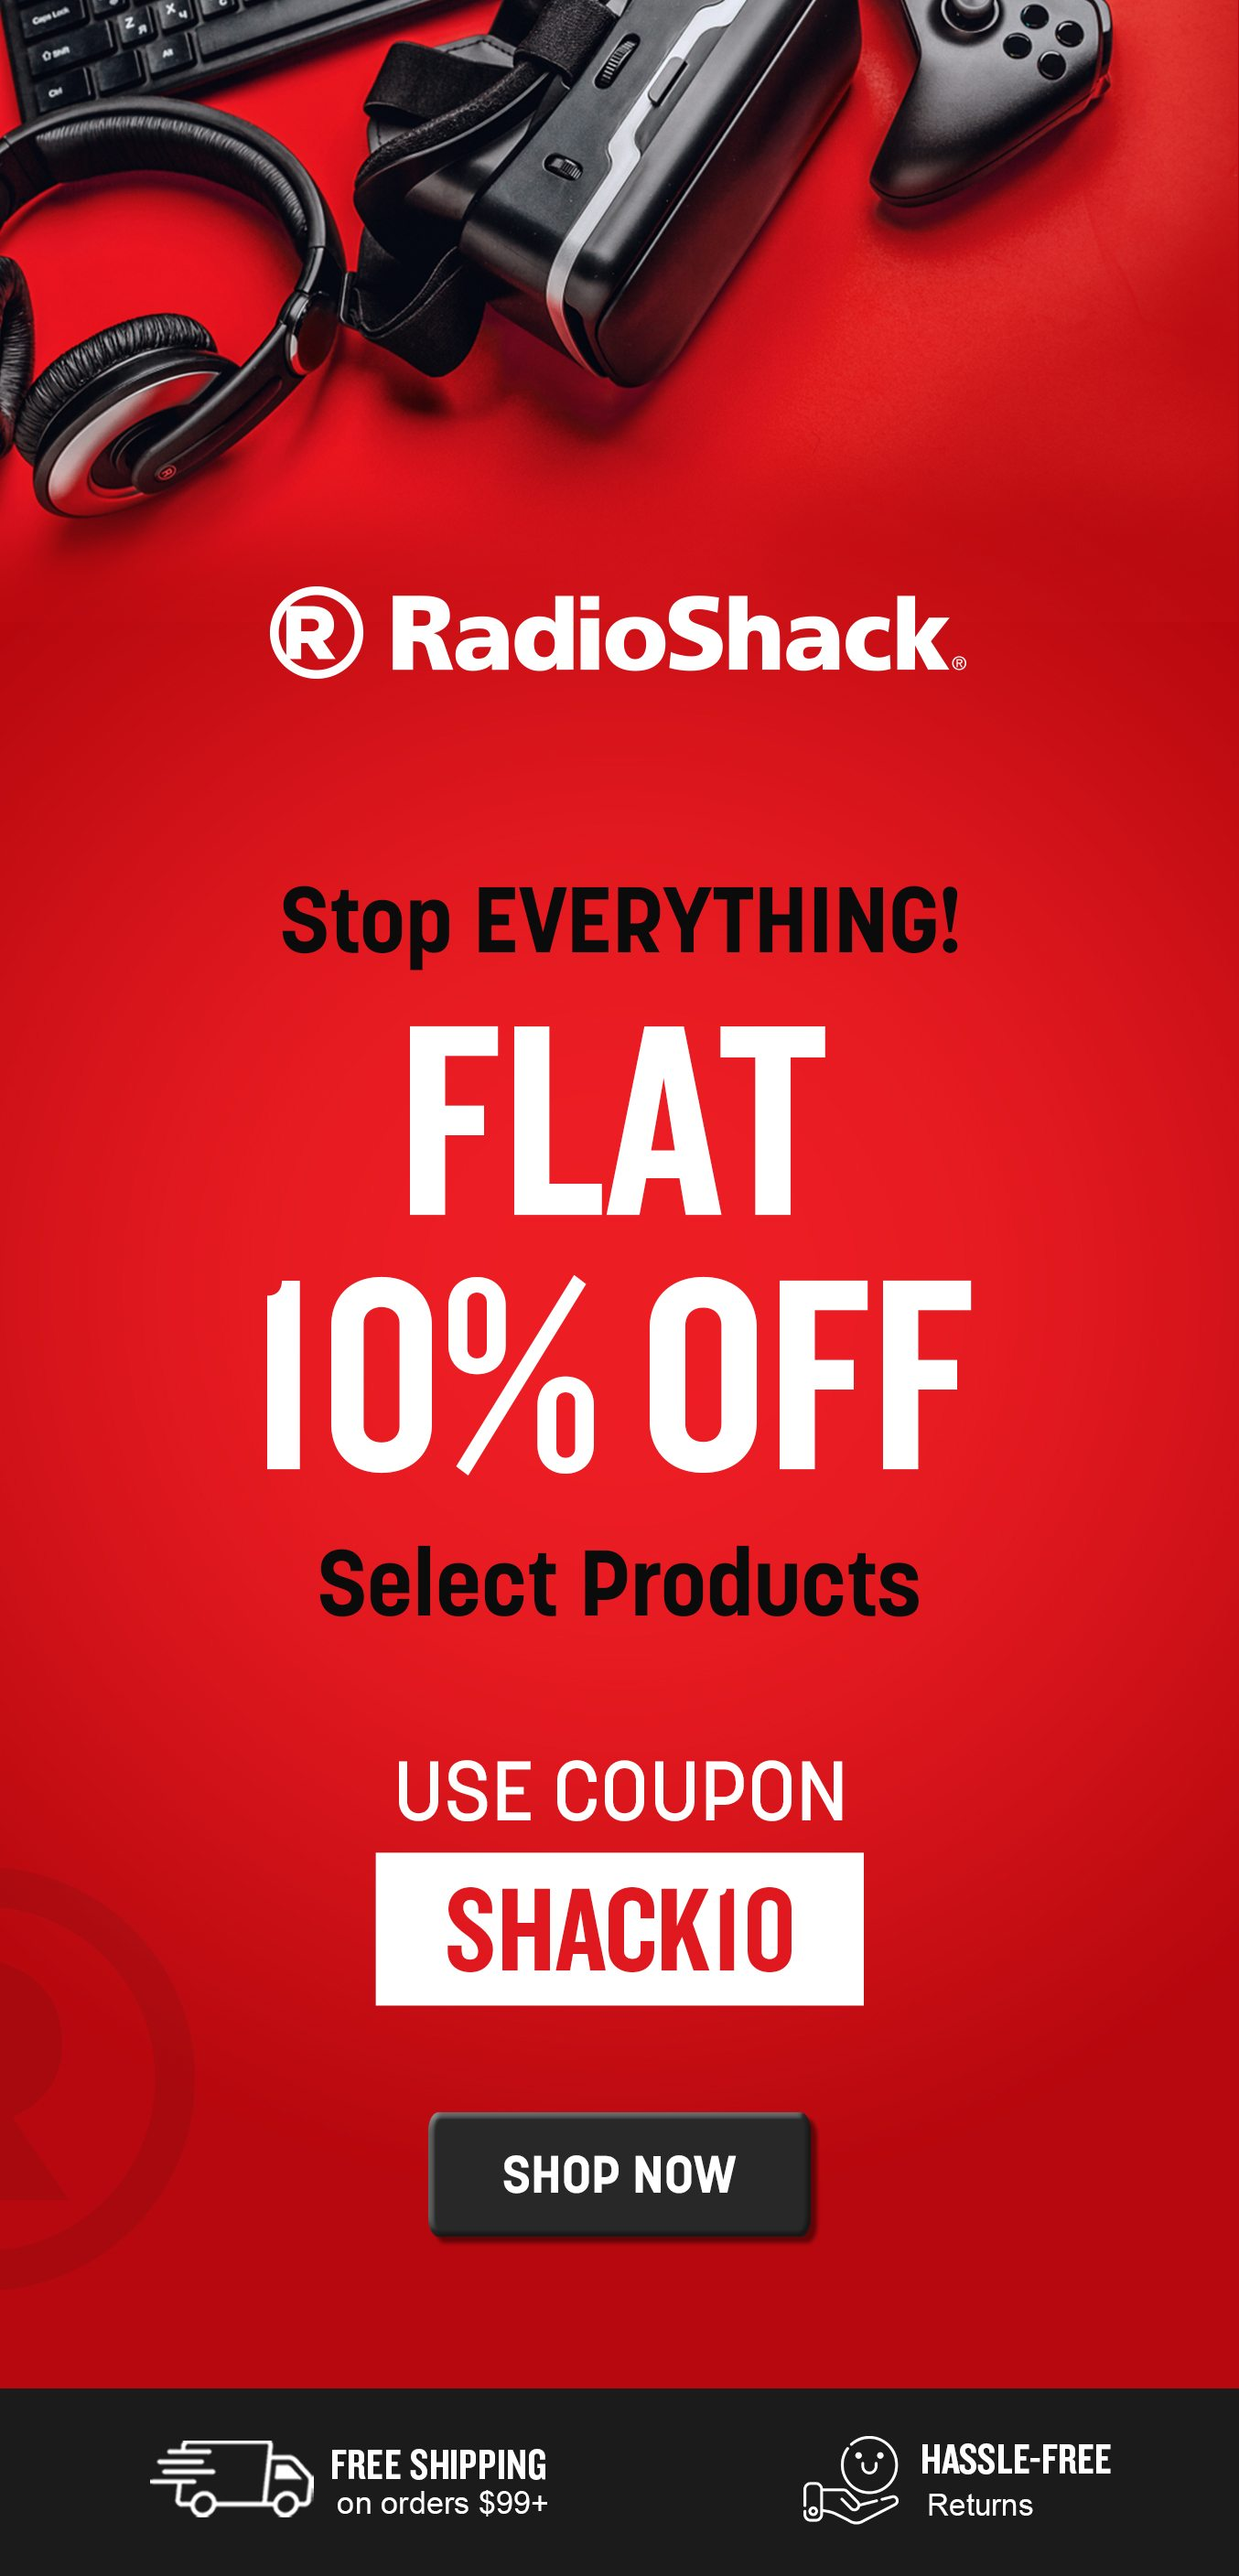 10% OFF SELECT PRODUCTS